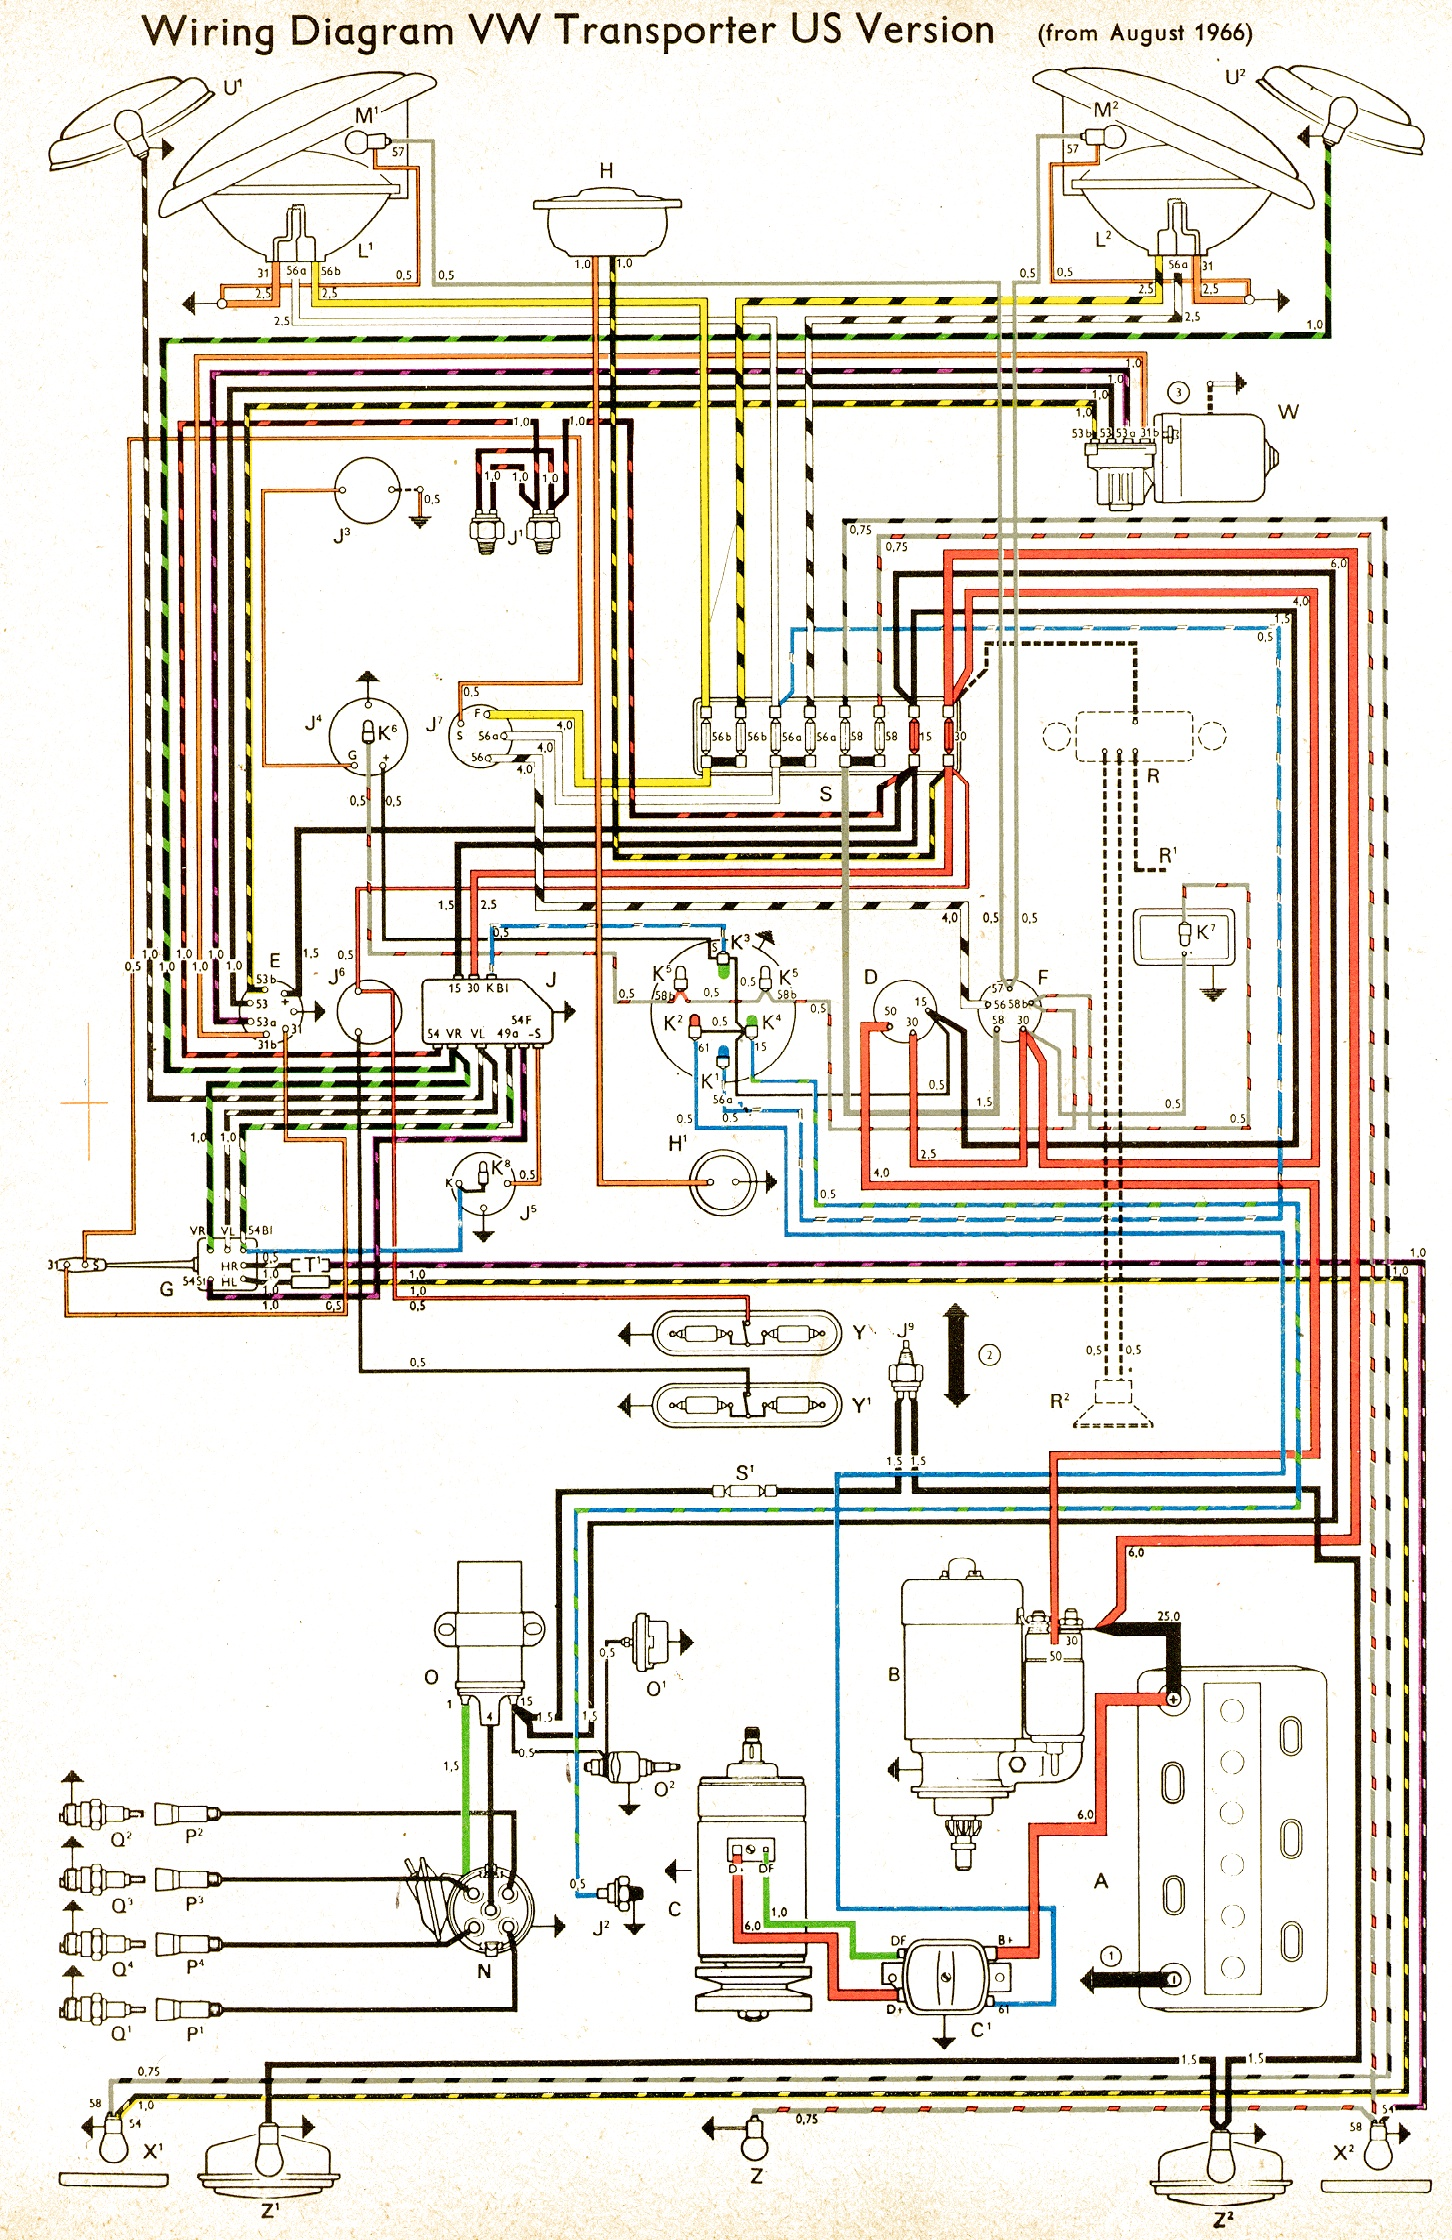 bus 66 usa vintagebus com vw bus (and other) wiring diagrams 1972 VW Beetle Wiring Diagram at panicattacktreatment.co